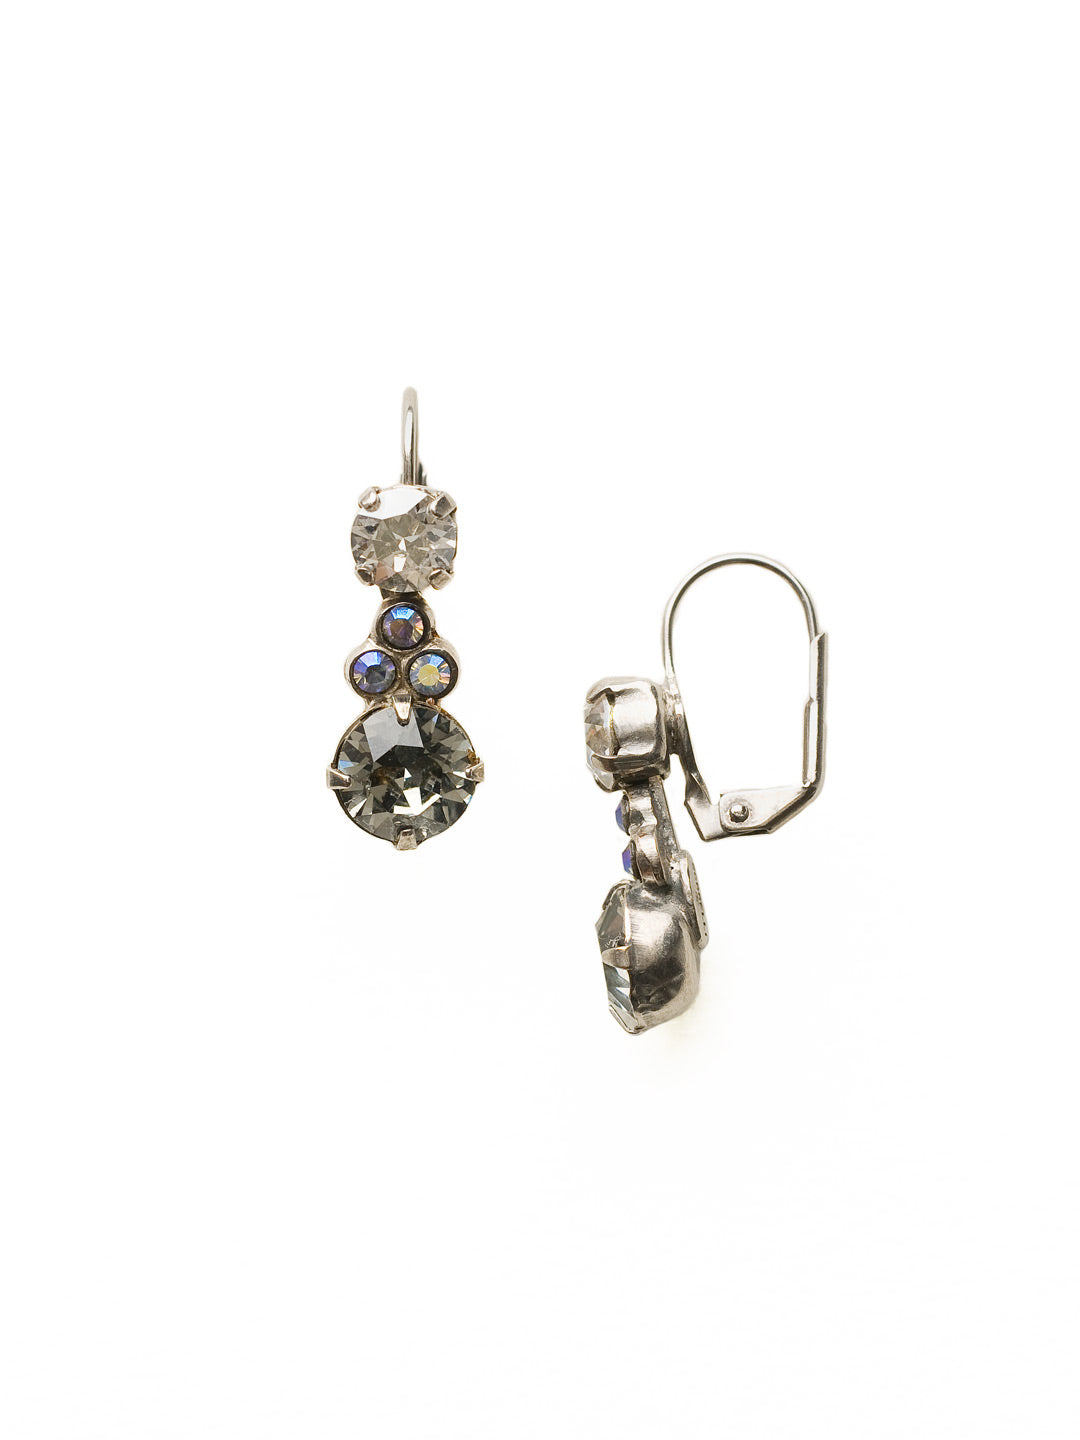 Clustered Circular Crystal Drop Earring - ECJ14ASCRO